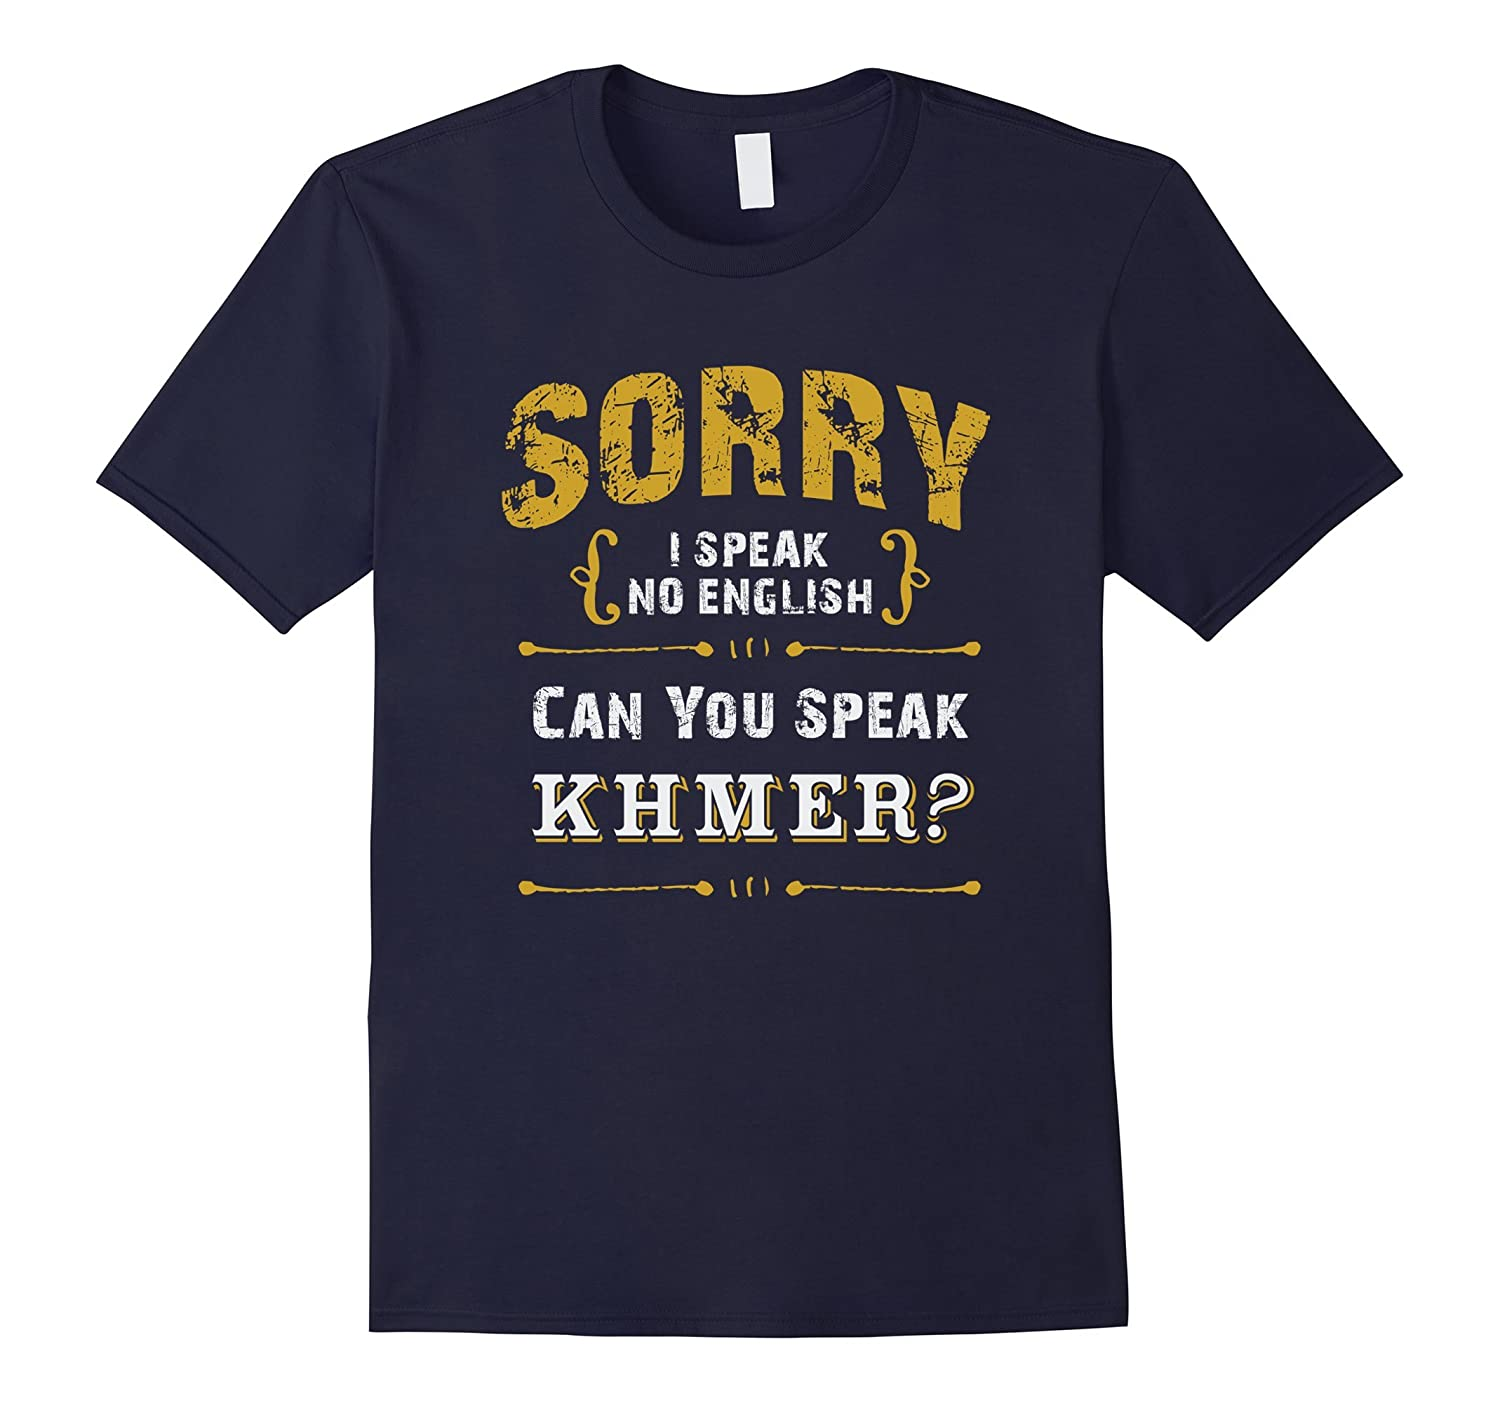 Cambodia Learning English T Shirt Can You Speak Khmer-CD